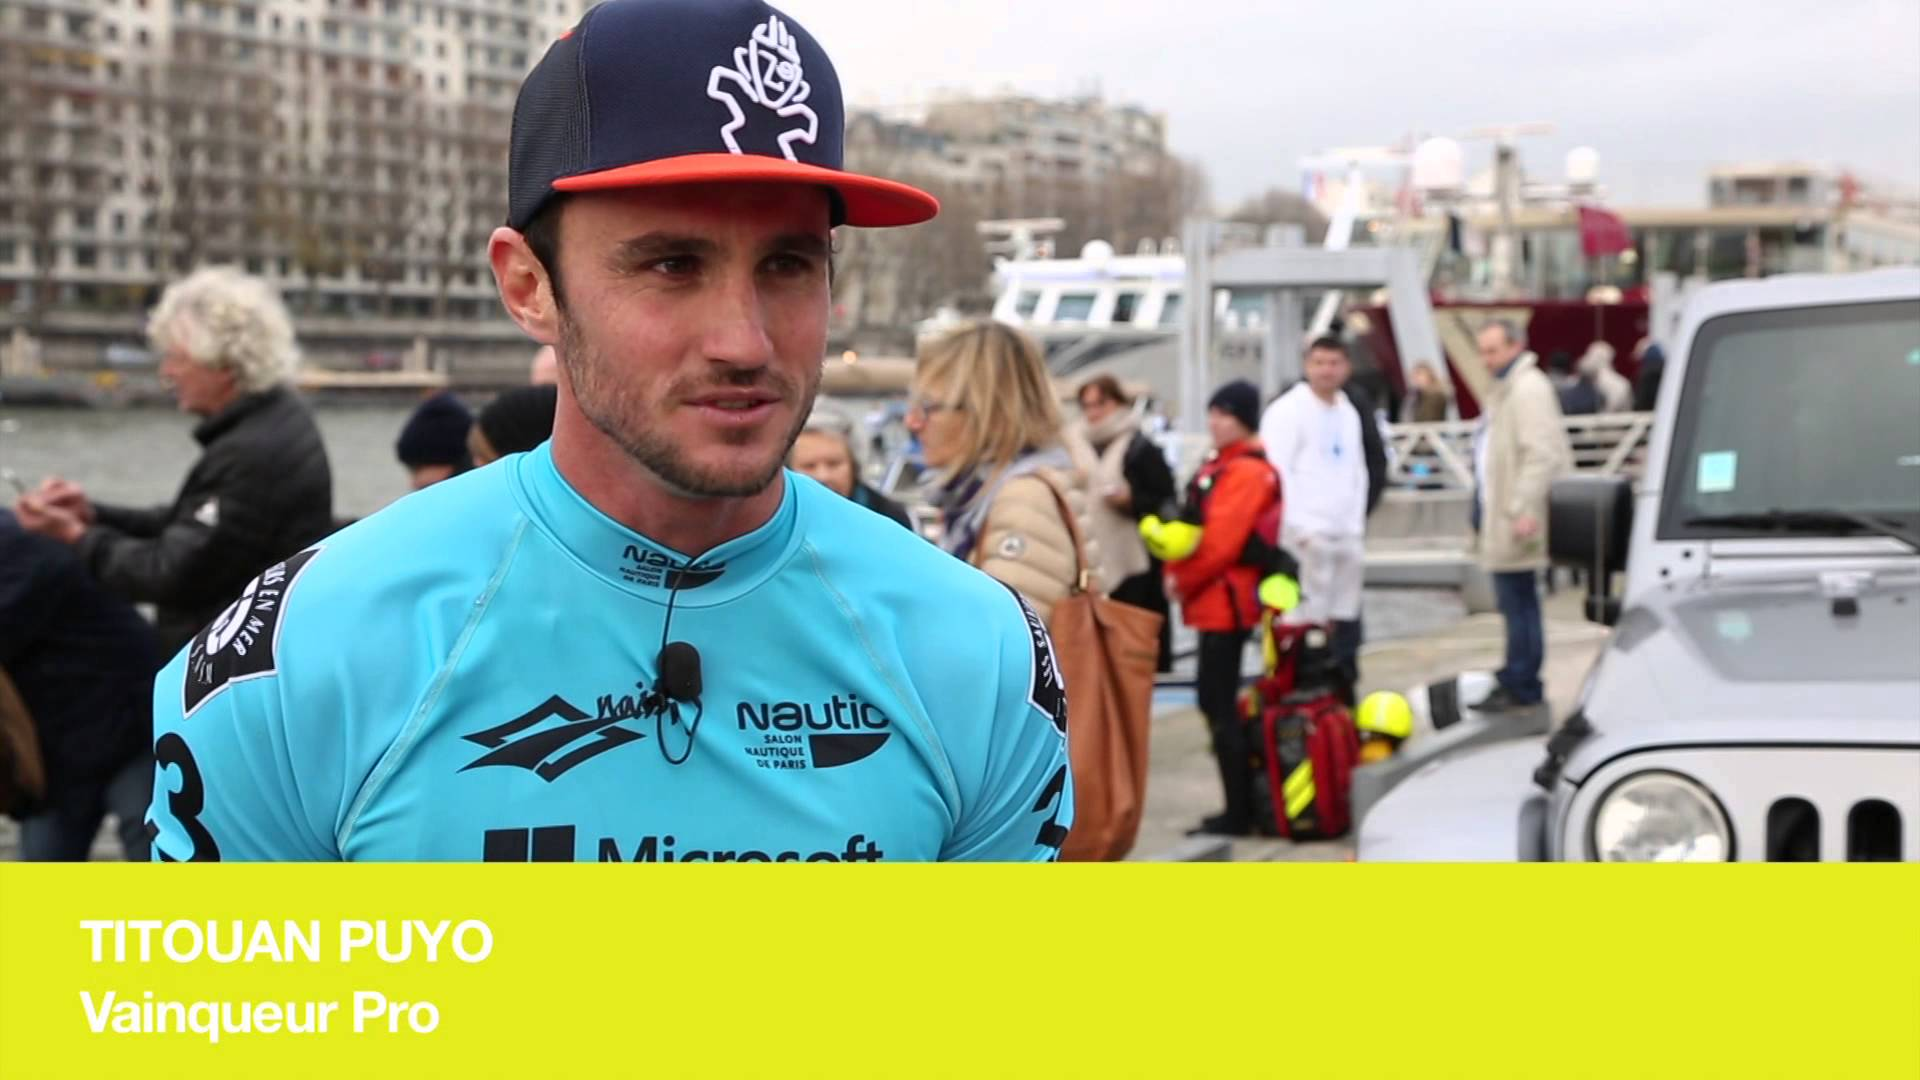 The 2015 Nautic SUP Paris Crossing Videos